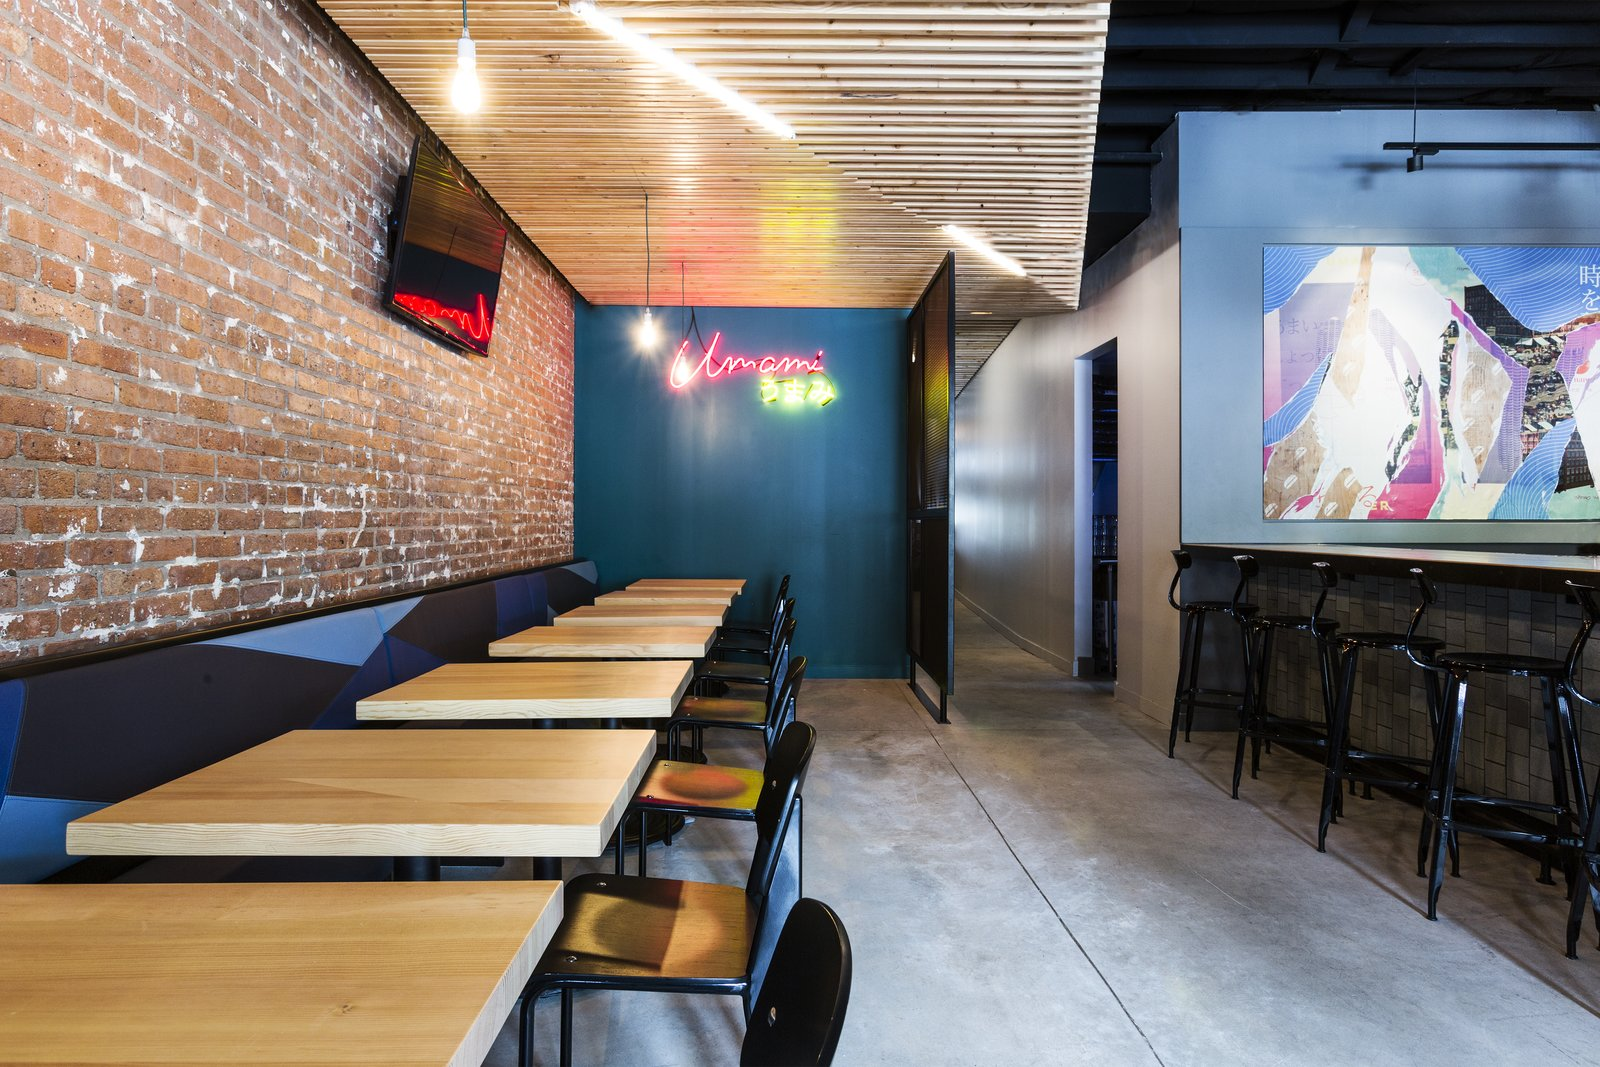 At this Chicago location, Project M Plus installed panels of custom wooden slats on the ceiling. The geometric shapes refer to the art of origami. A Popular Burger Joint Flaunts Its Roots With the Help of a Design Collective - Photo 3 of 9